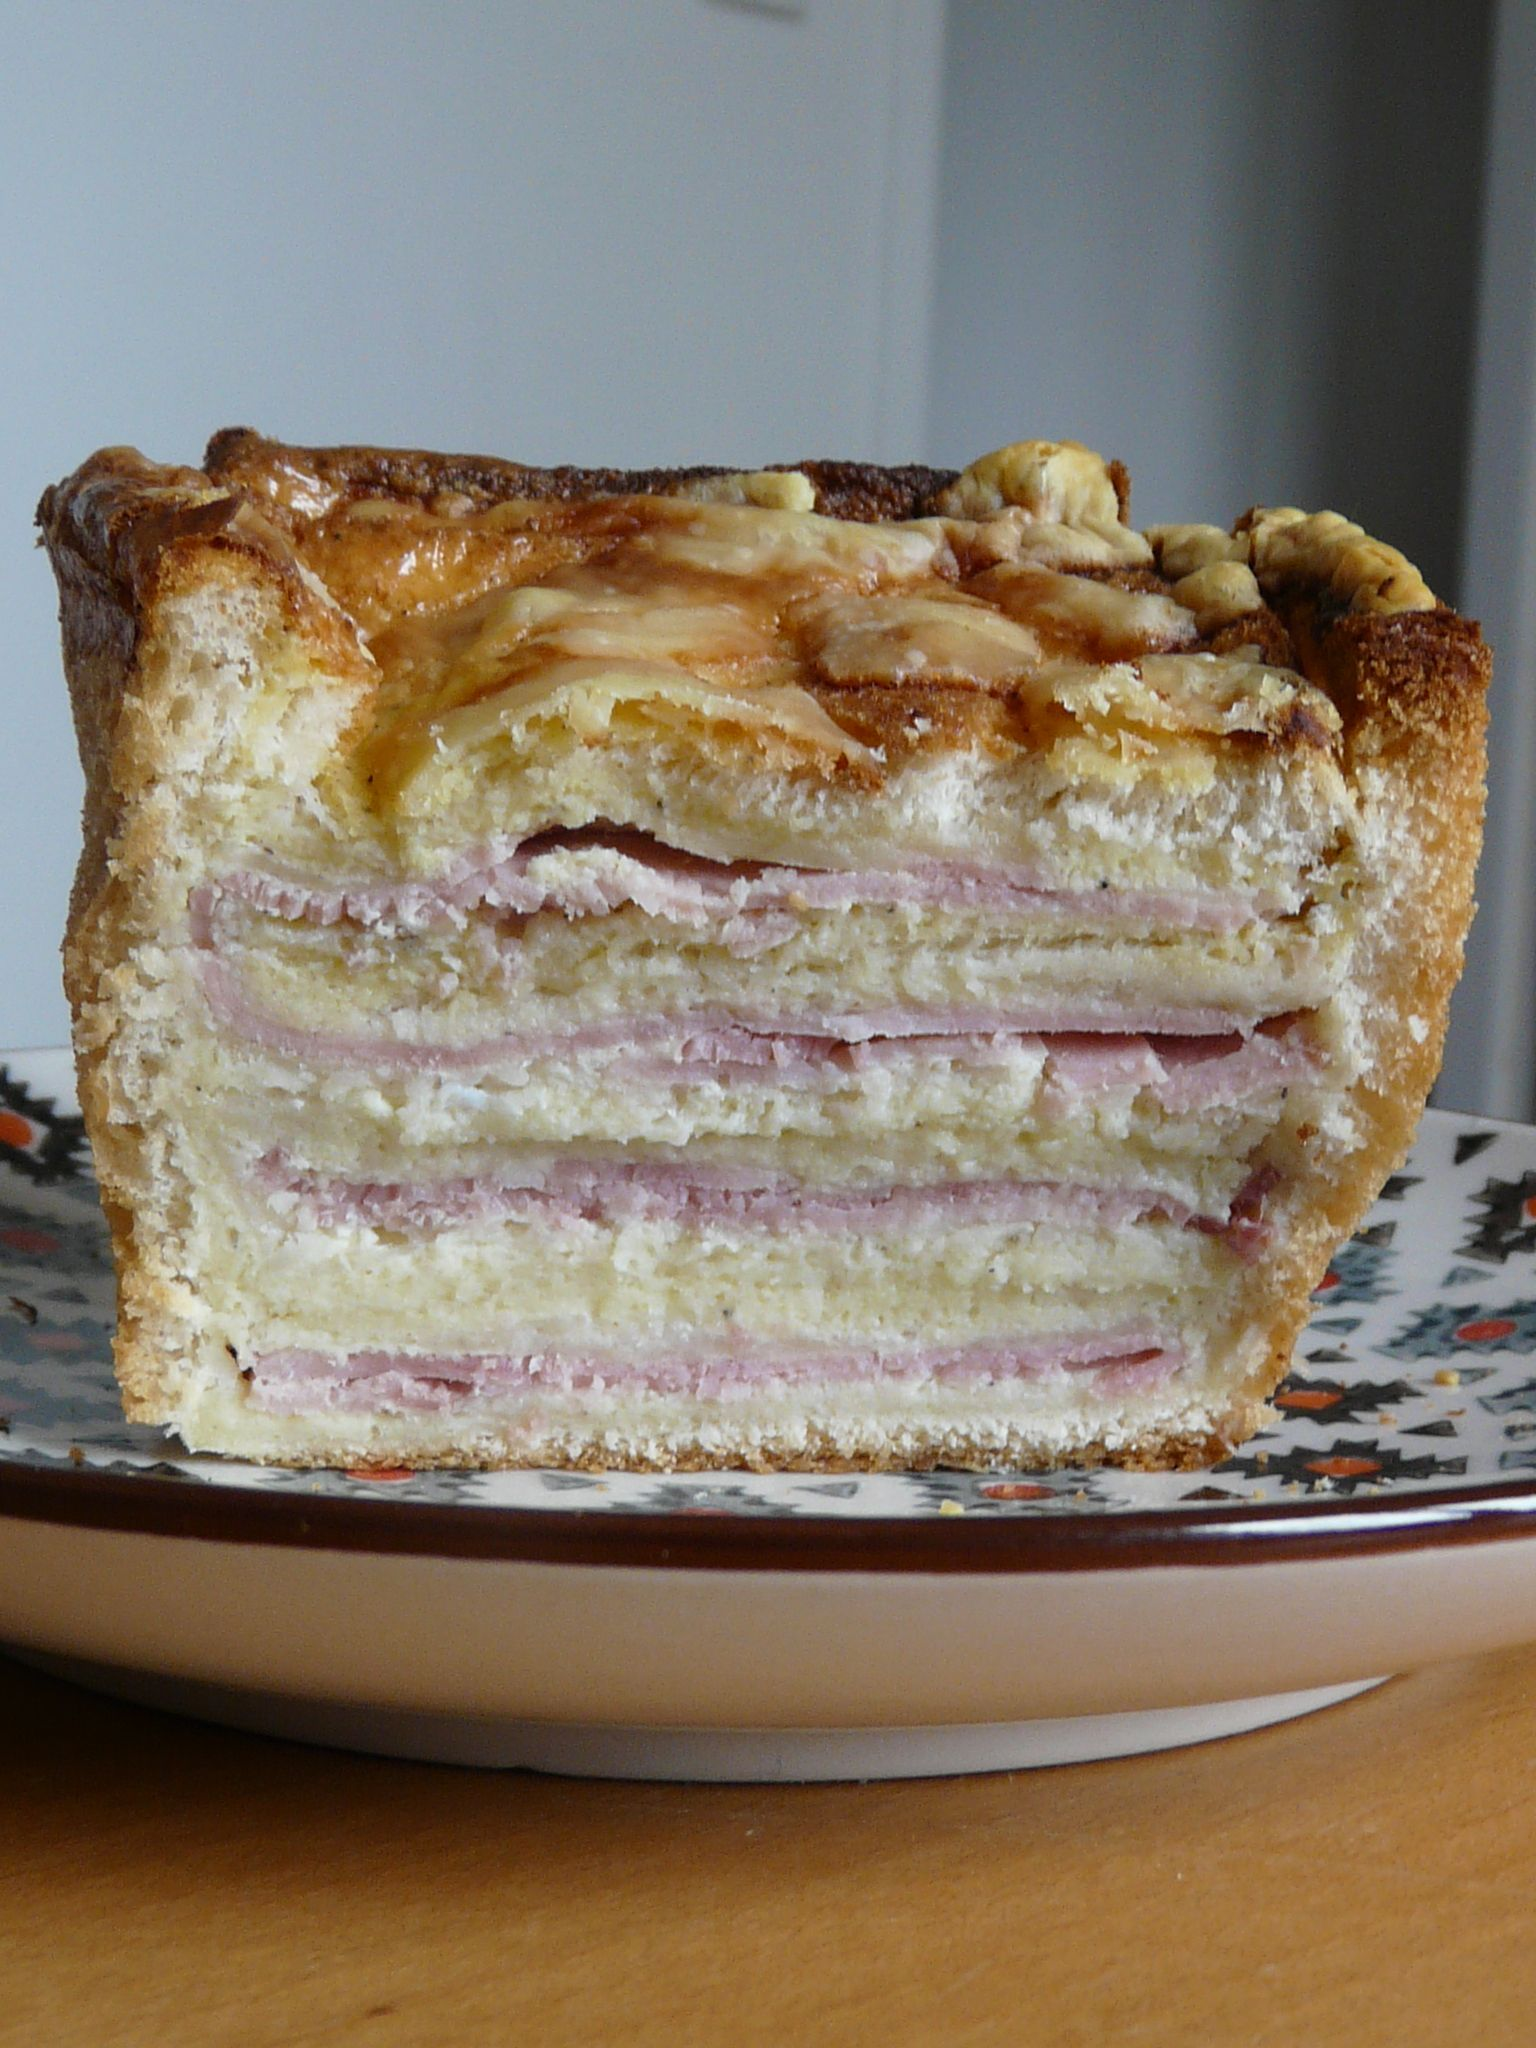 The amazing Croque cake - Gastronomades